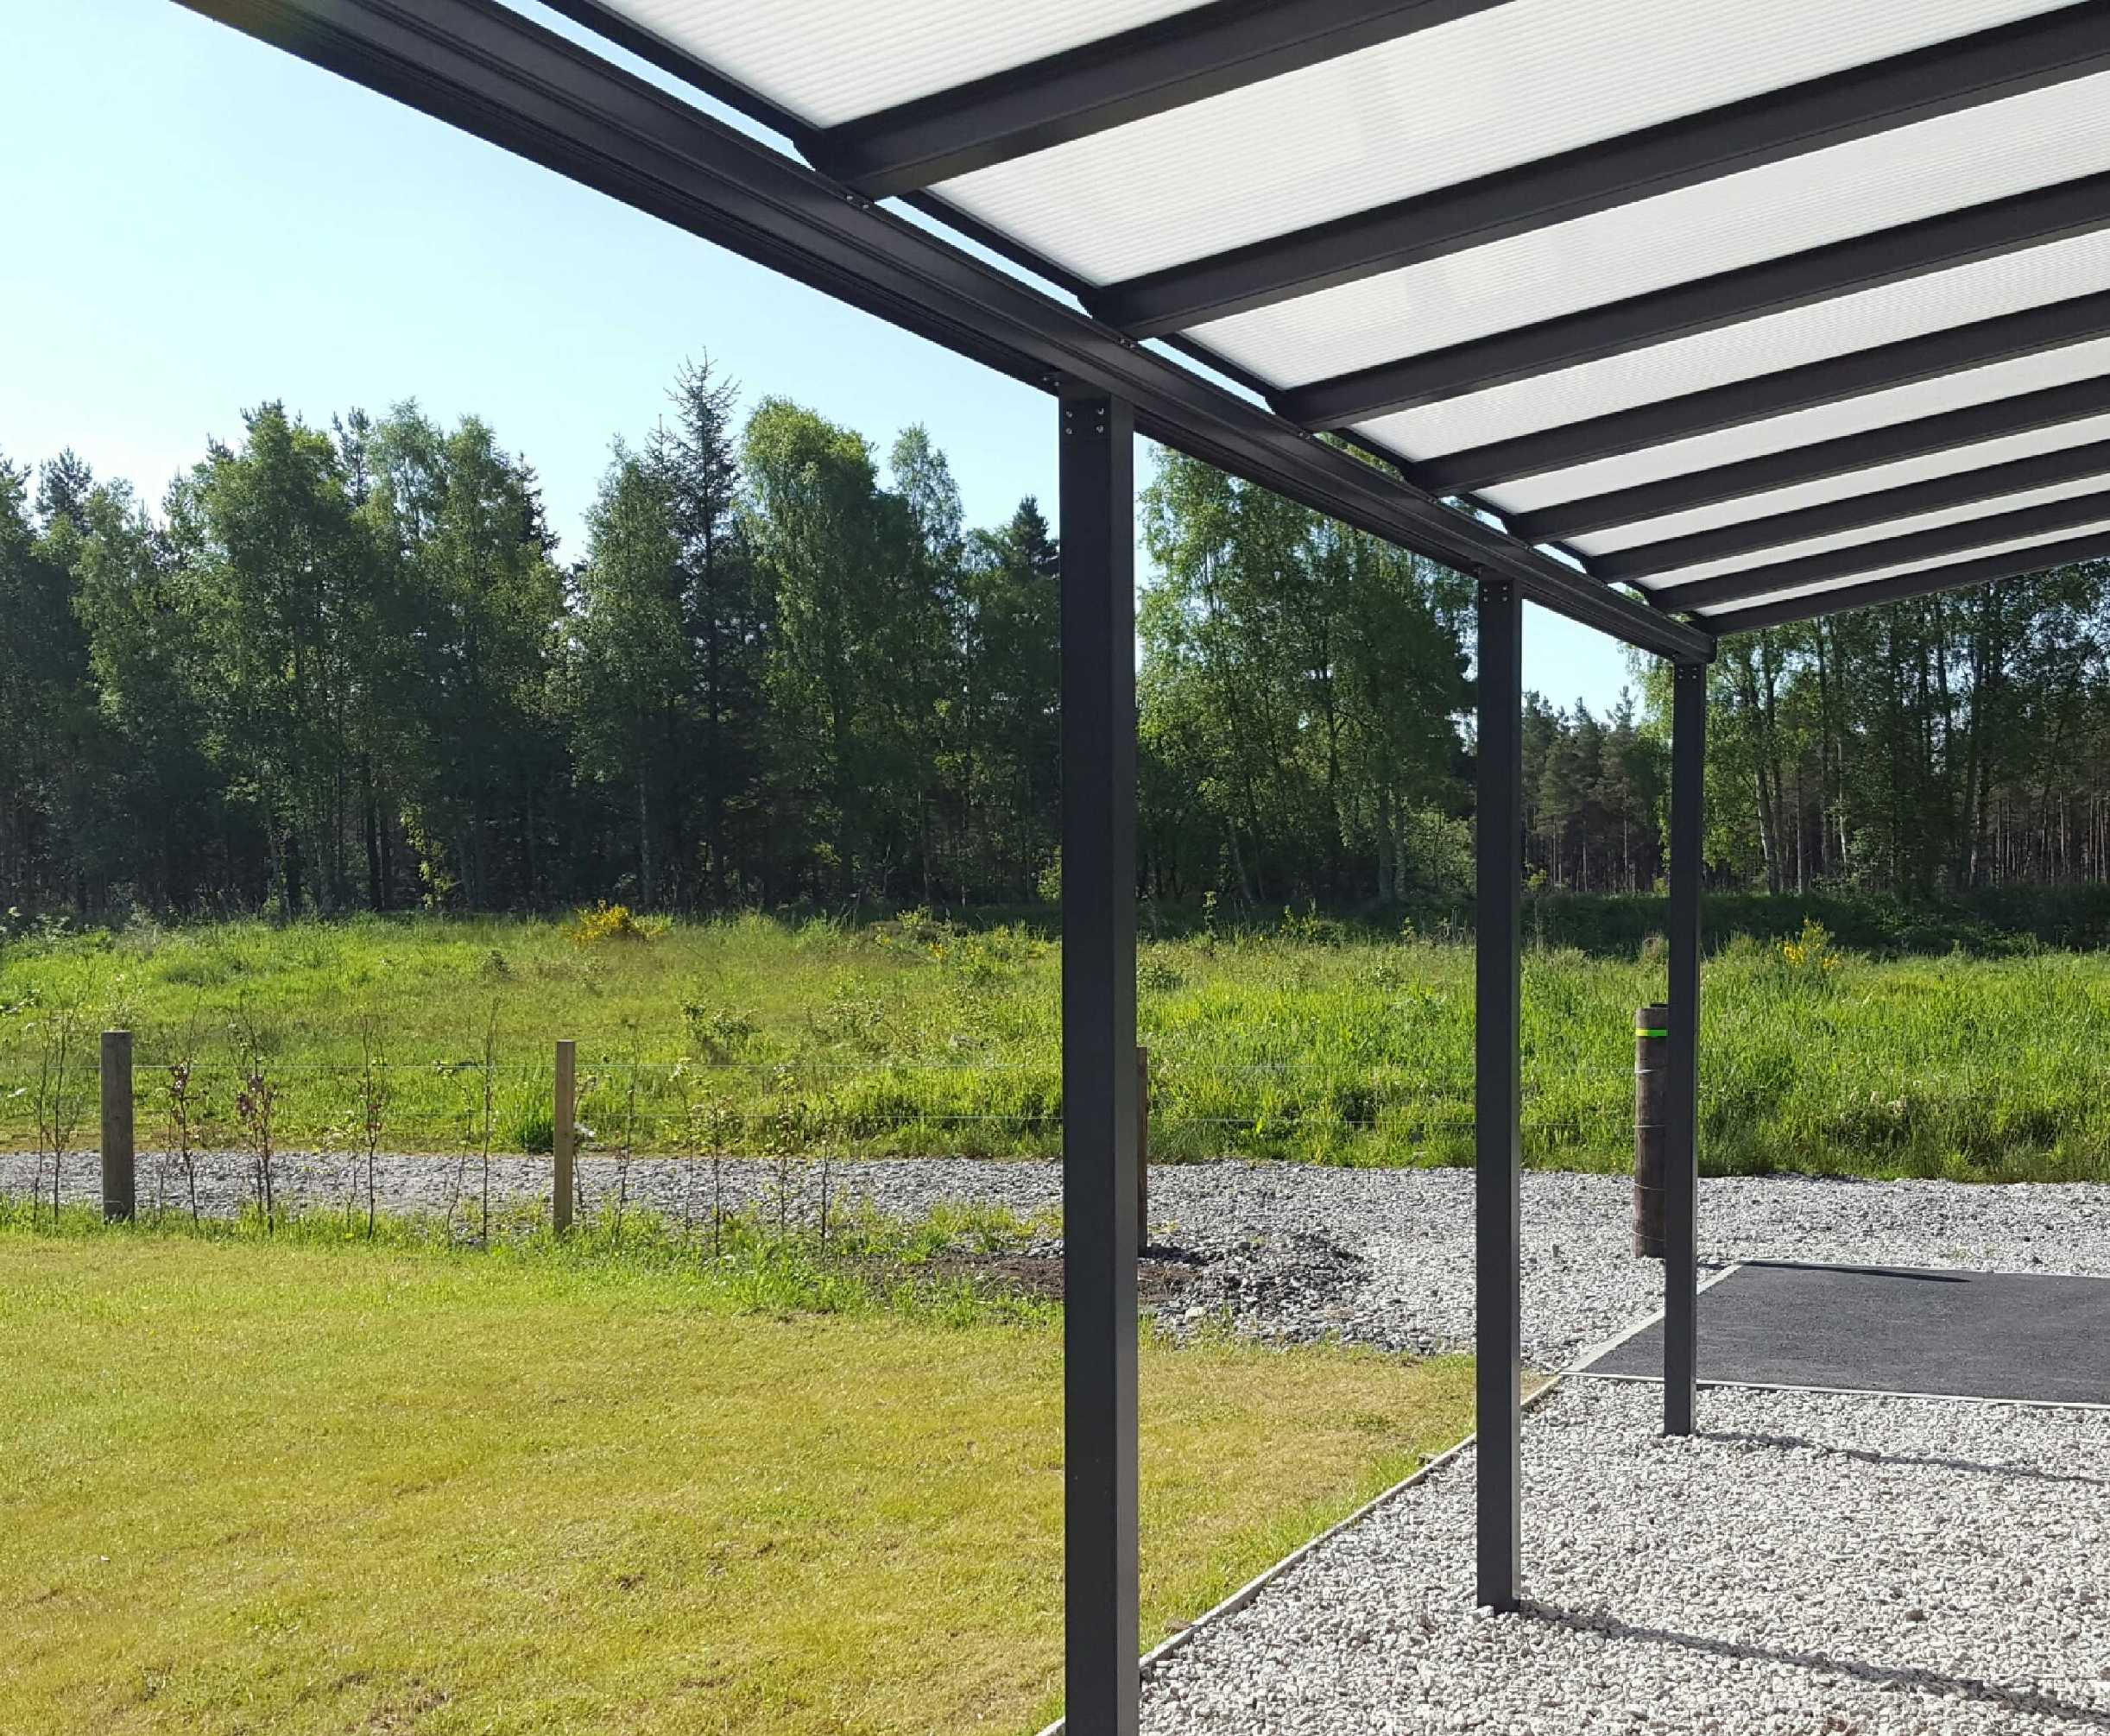 Omega Smart Lean-To Canopy, Anthracite Grey, UNGLAZED for 6mm Glazing - 3.5m (W) x 2.5m (P), (3) Supporting Posts